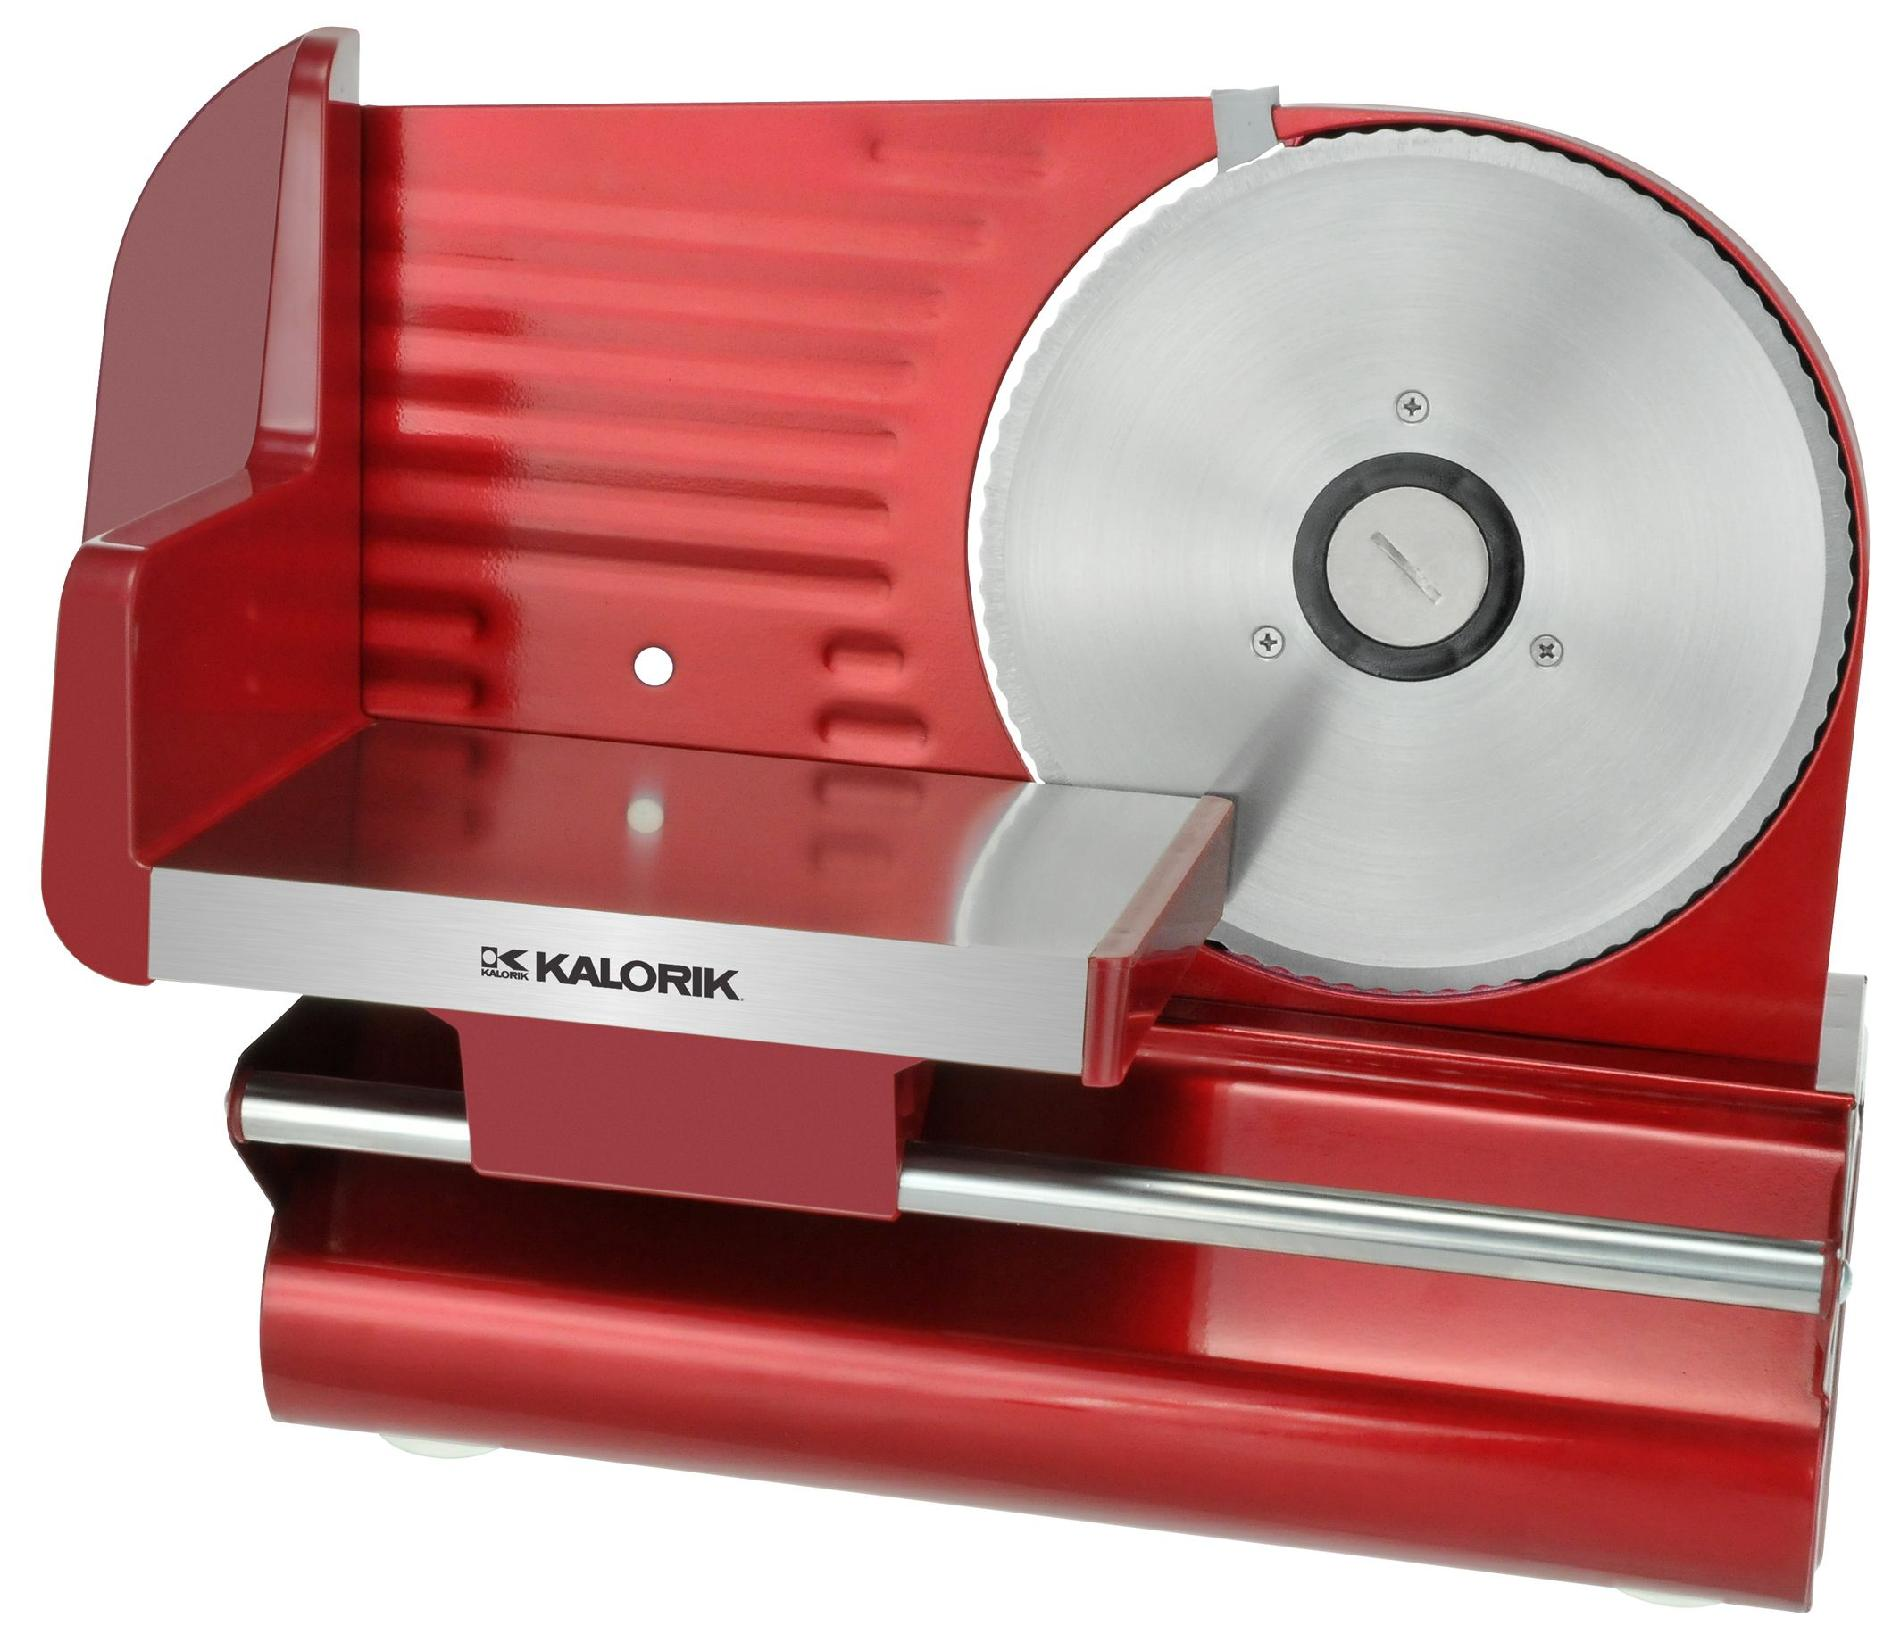 Kalorik Electric Meat Slicer with Red Finish